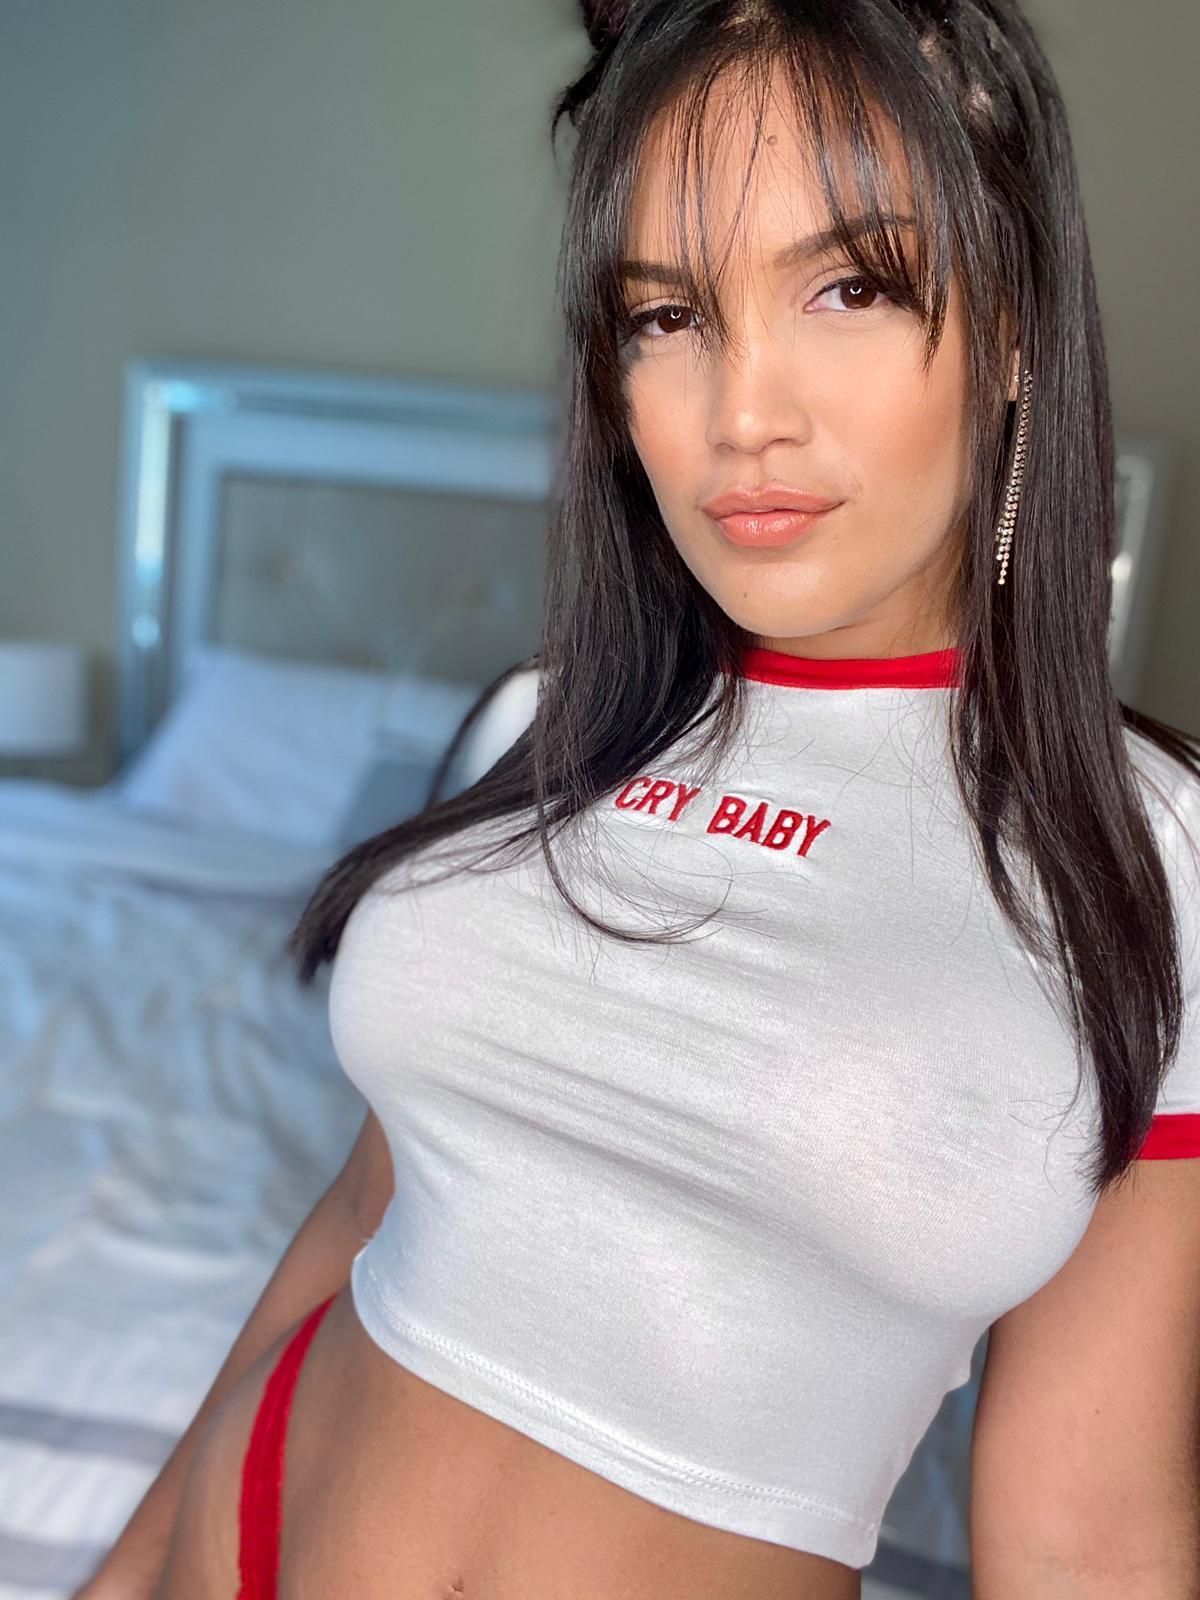 Onlyfans free Alinabelle onlyfans leaked